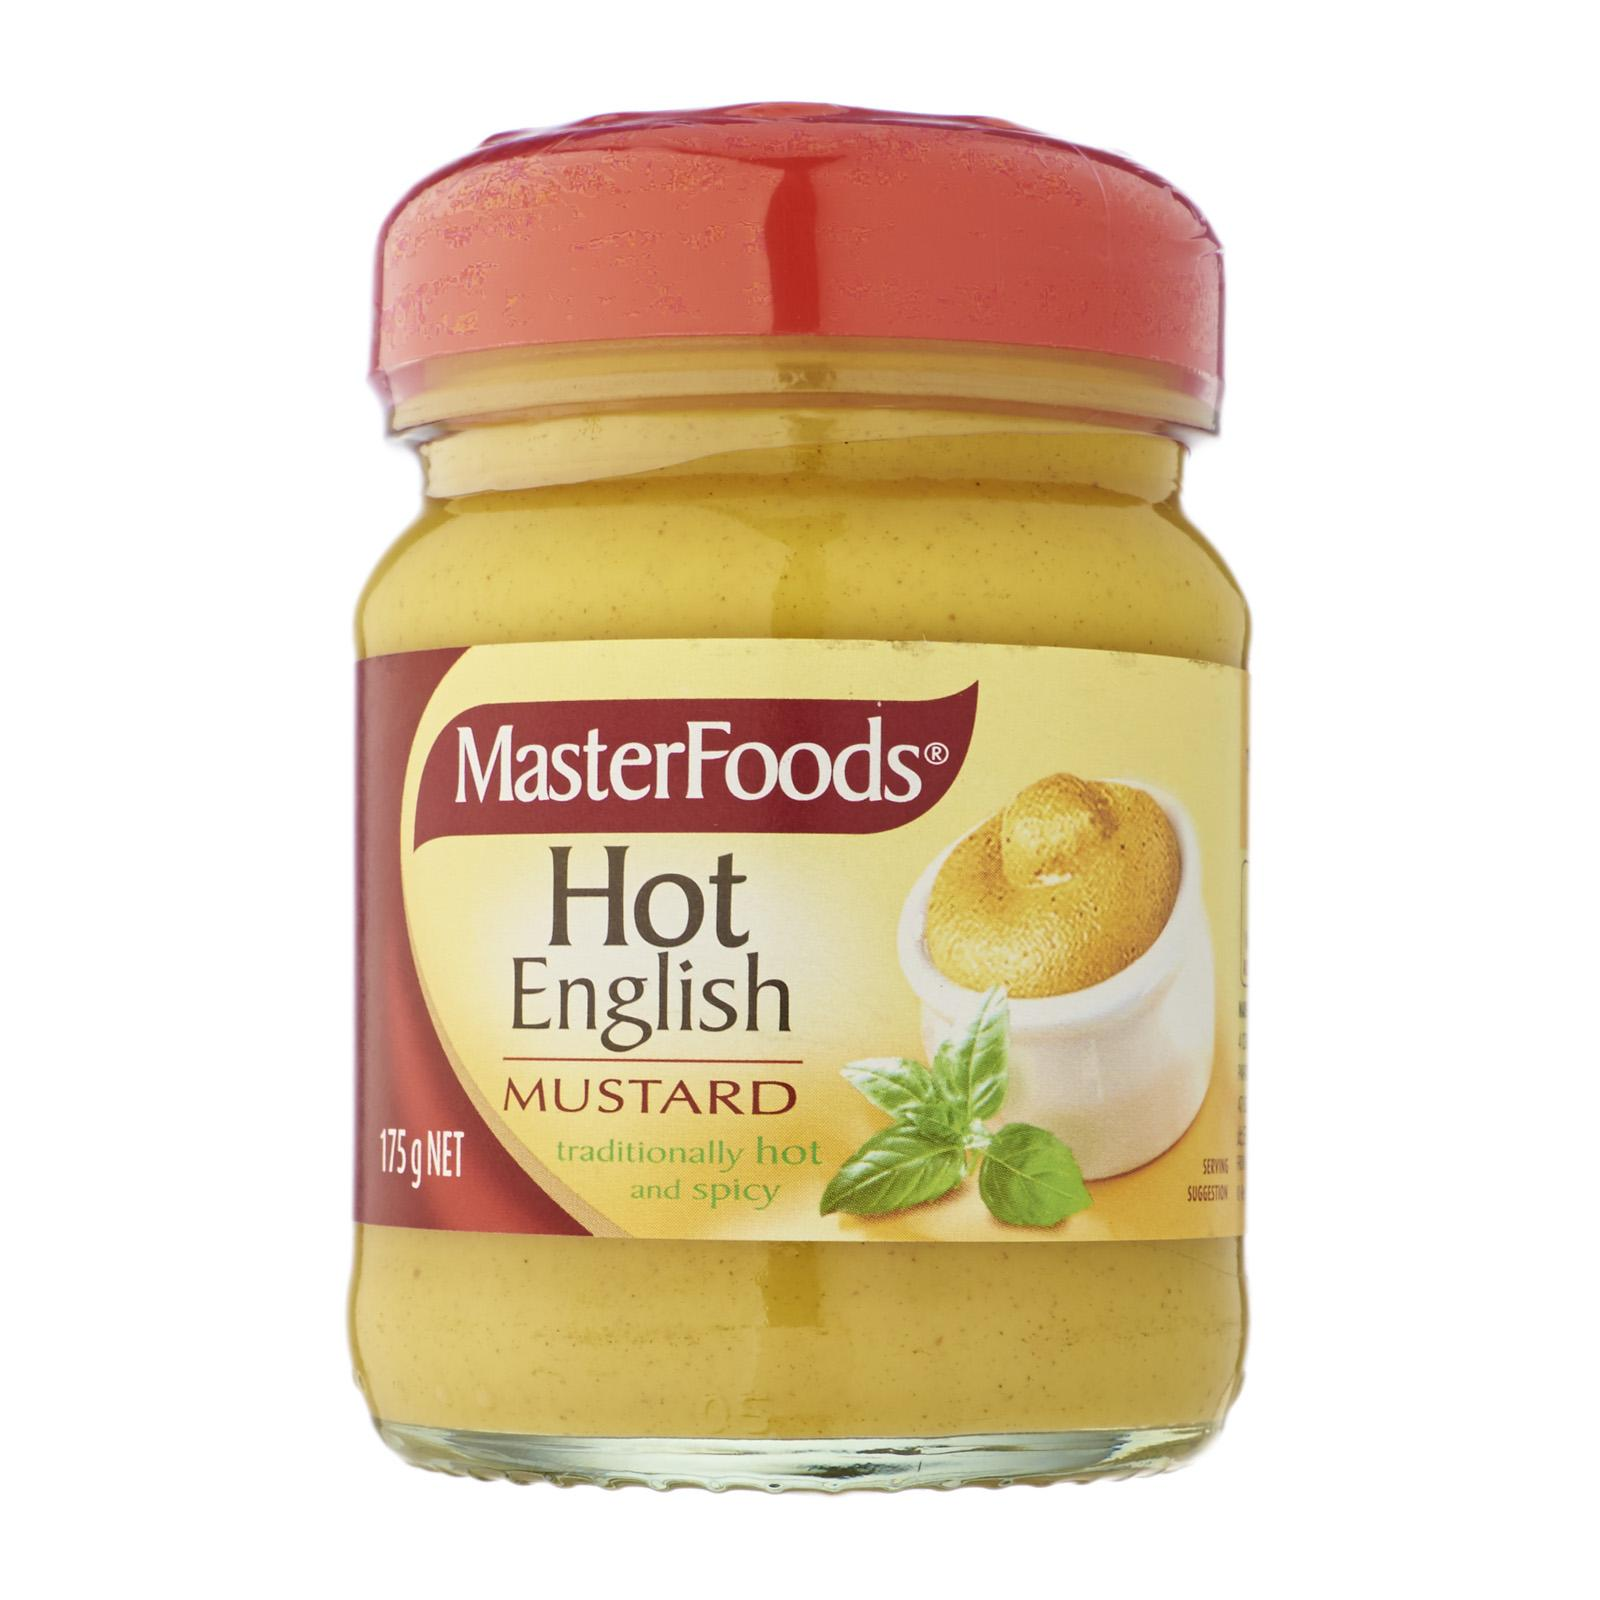 Masterfoods Hot English Mustard Jar By Redmart.